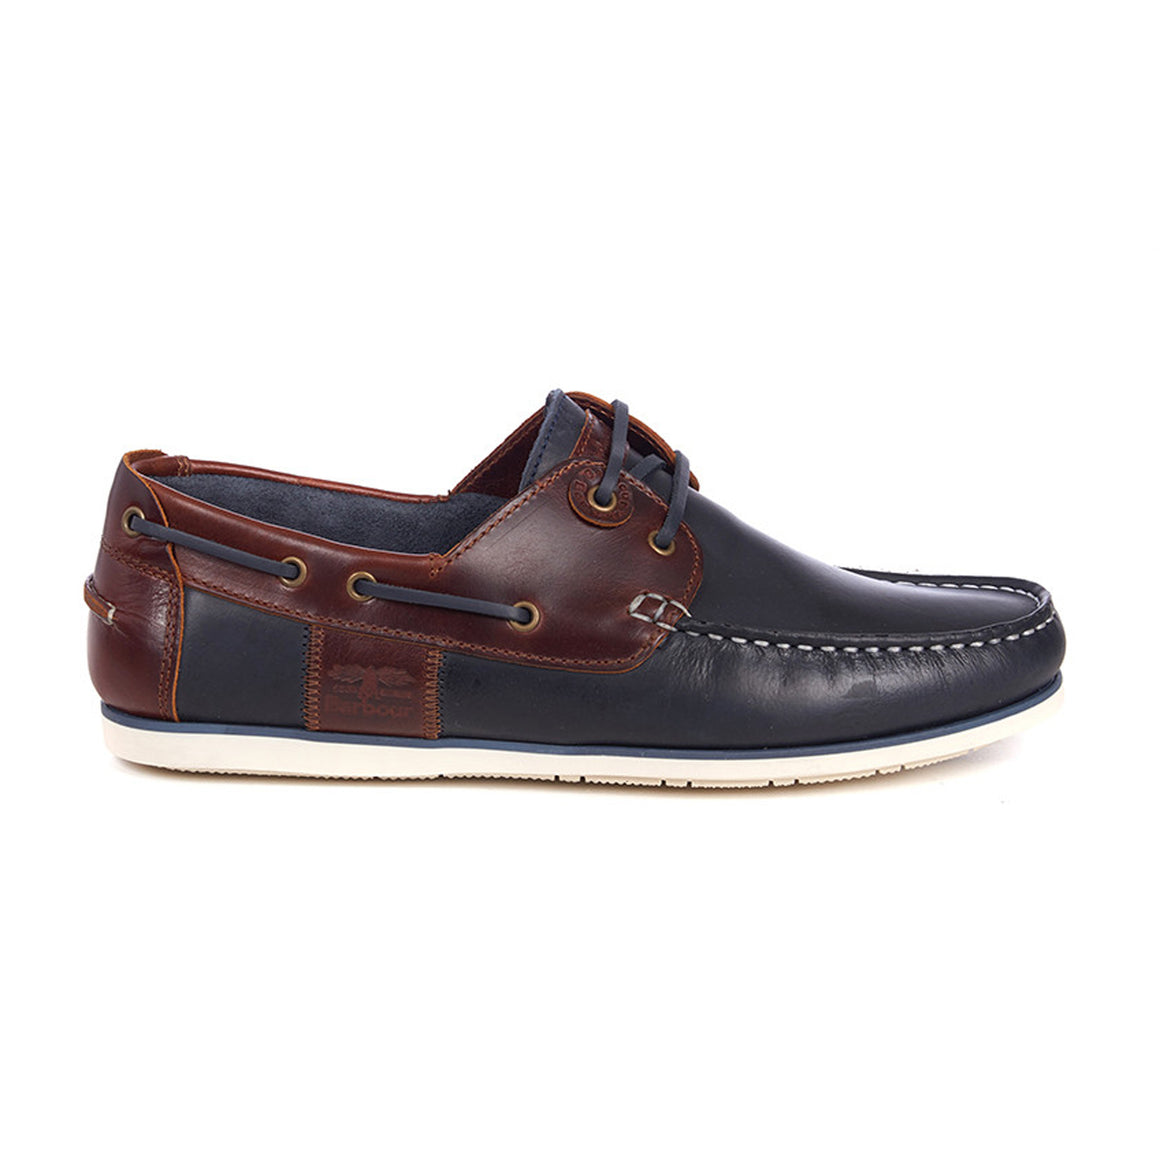 Capstan Boat Shoe  for Men in Navy & Brown